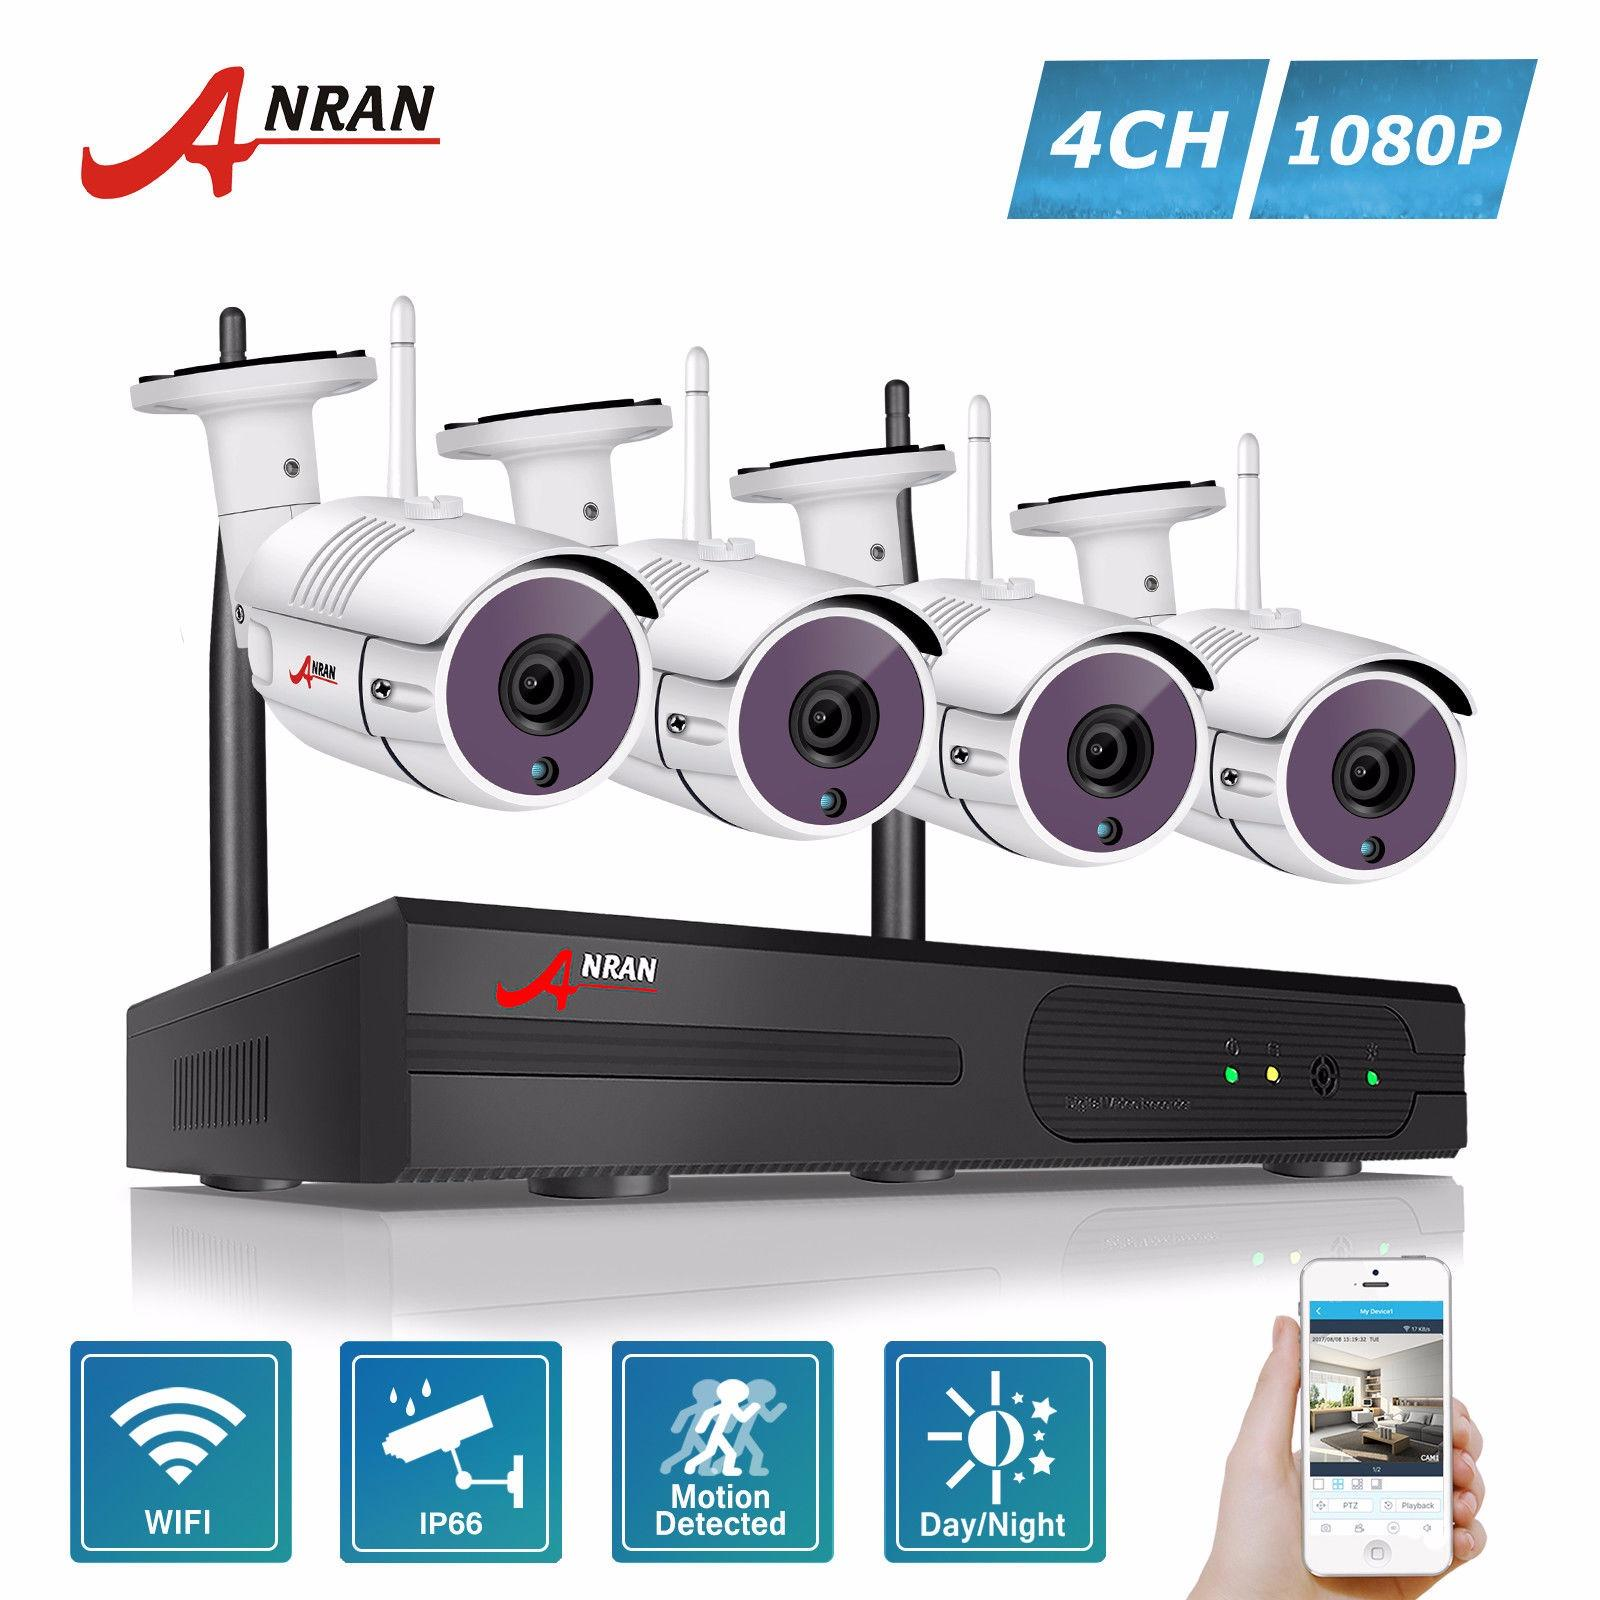 Spesifikasi Anran 4Ch Wireless Nvr Security Cctv System P2P 1080P Hd Outdoor Vandalproof Wfi Ip Camera Baru